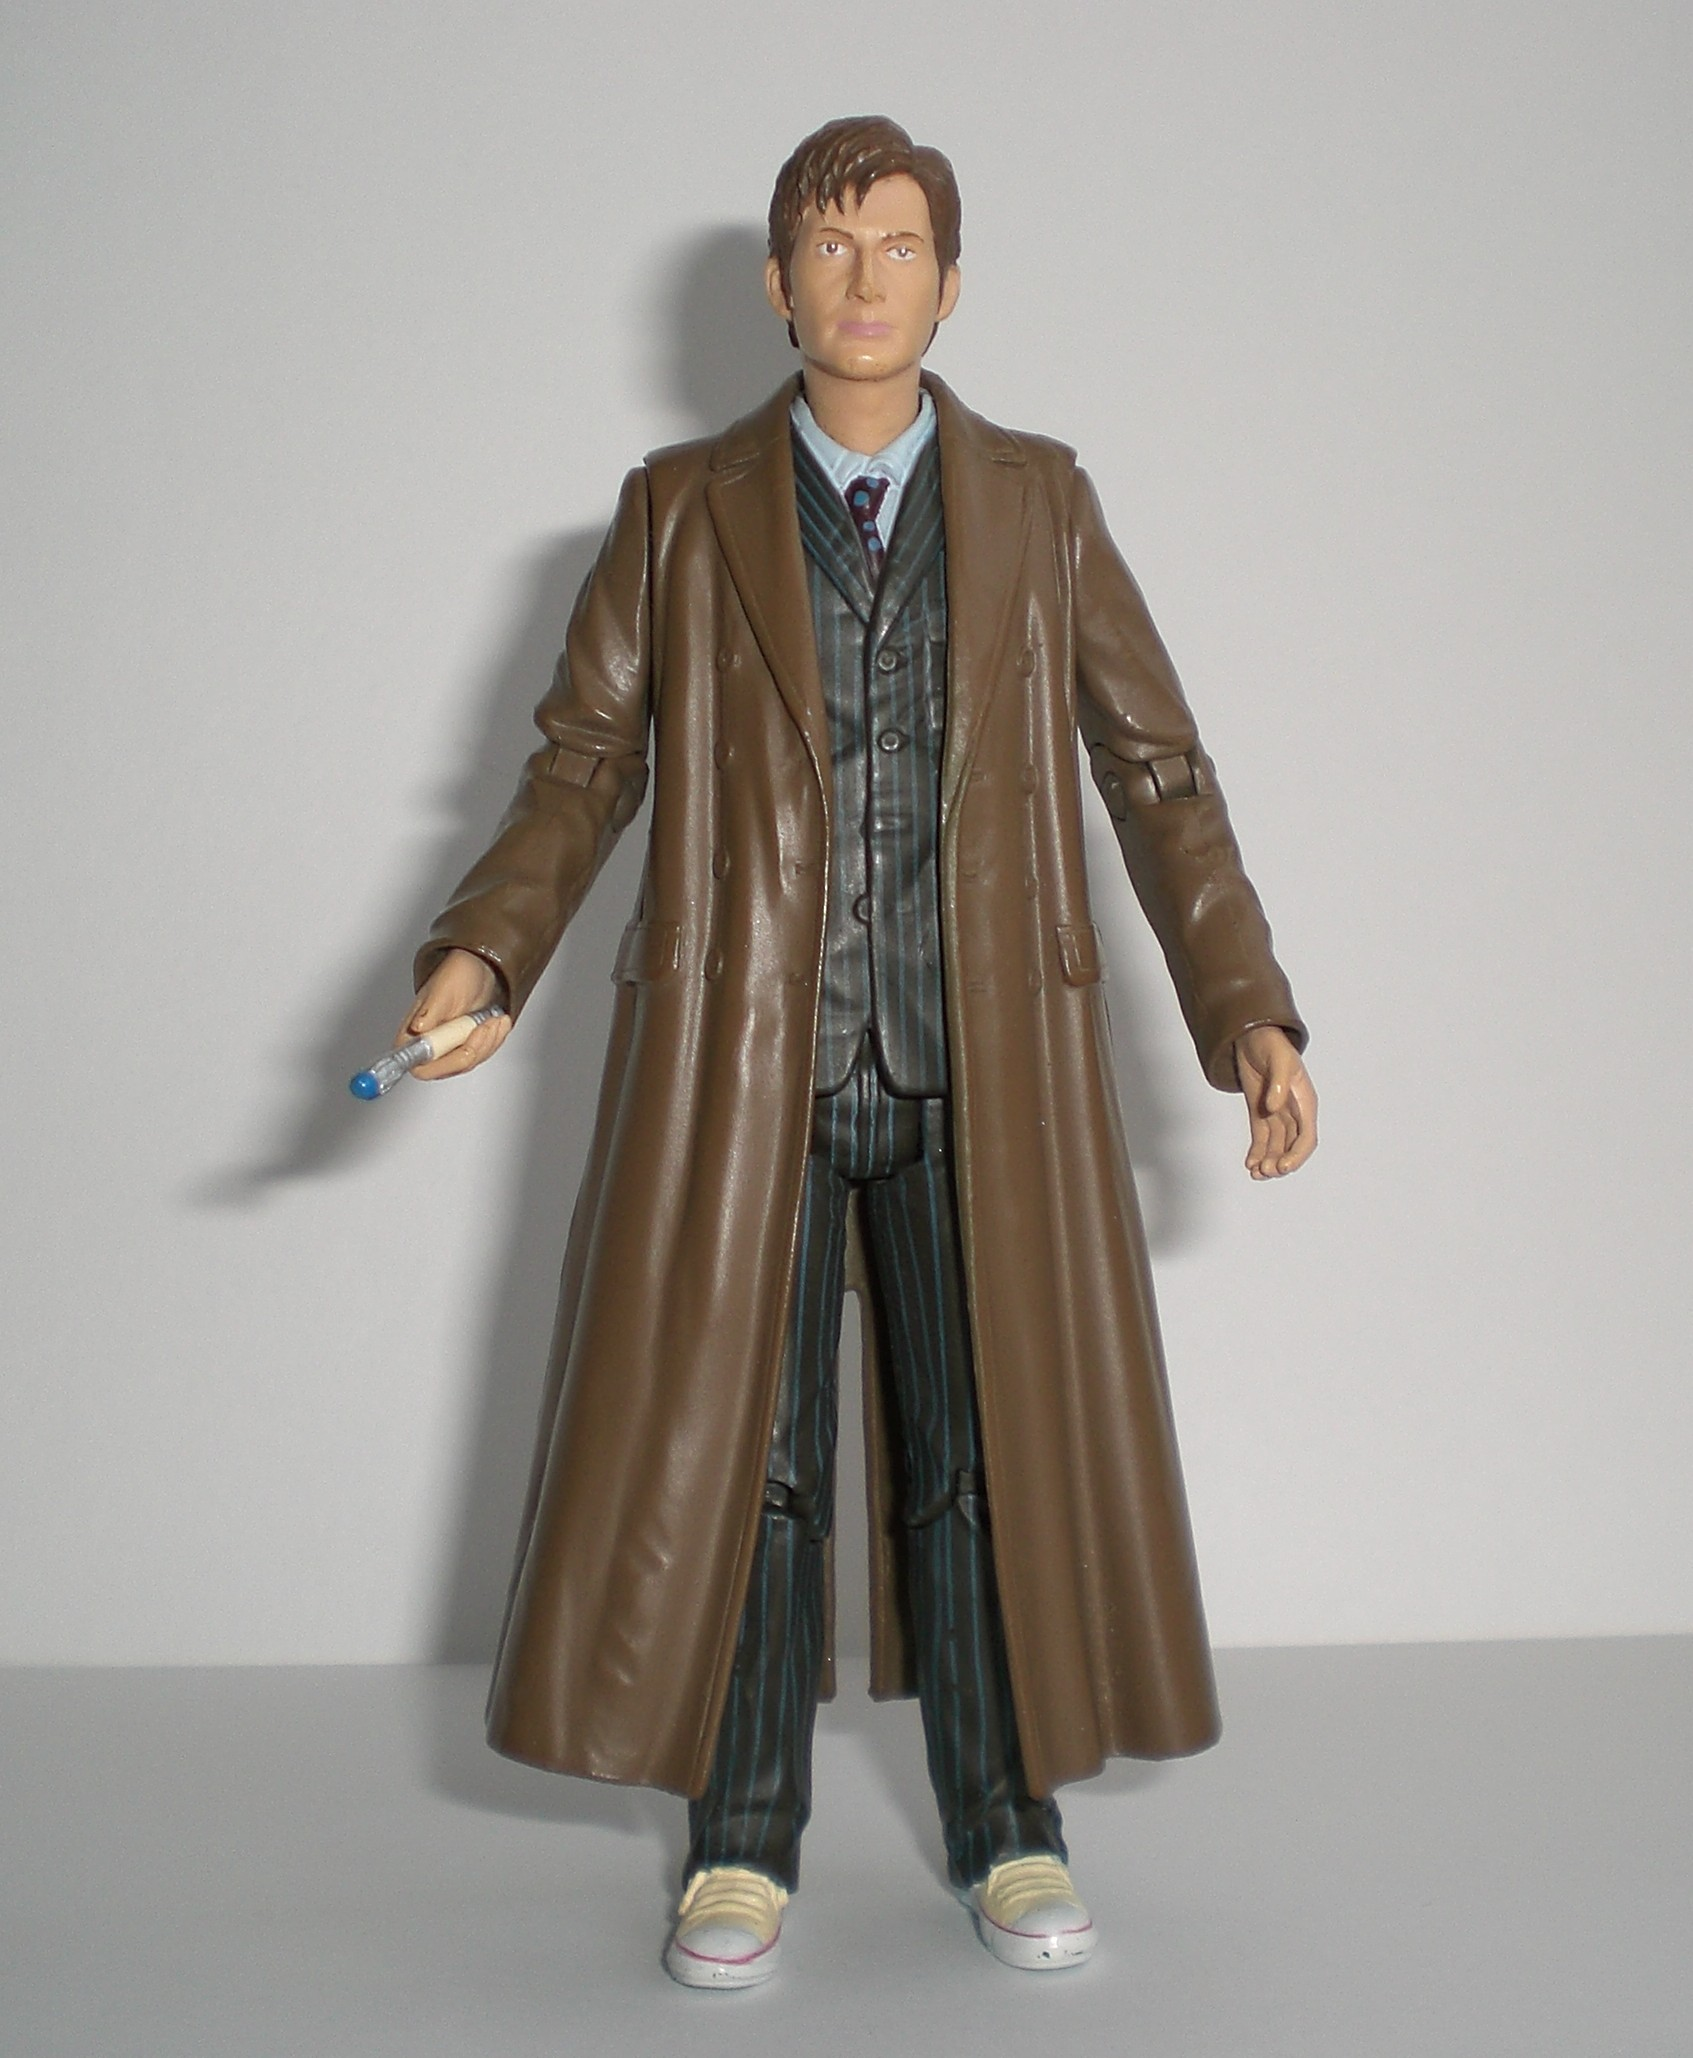 The Doctor with beige converse custom figure